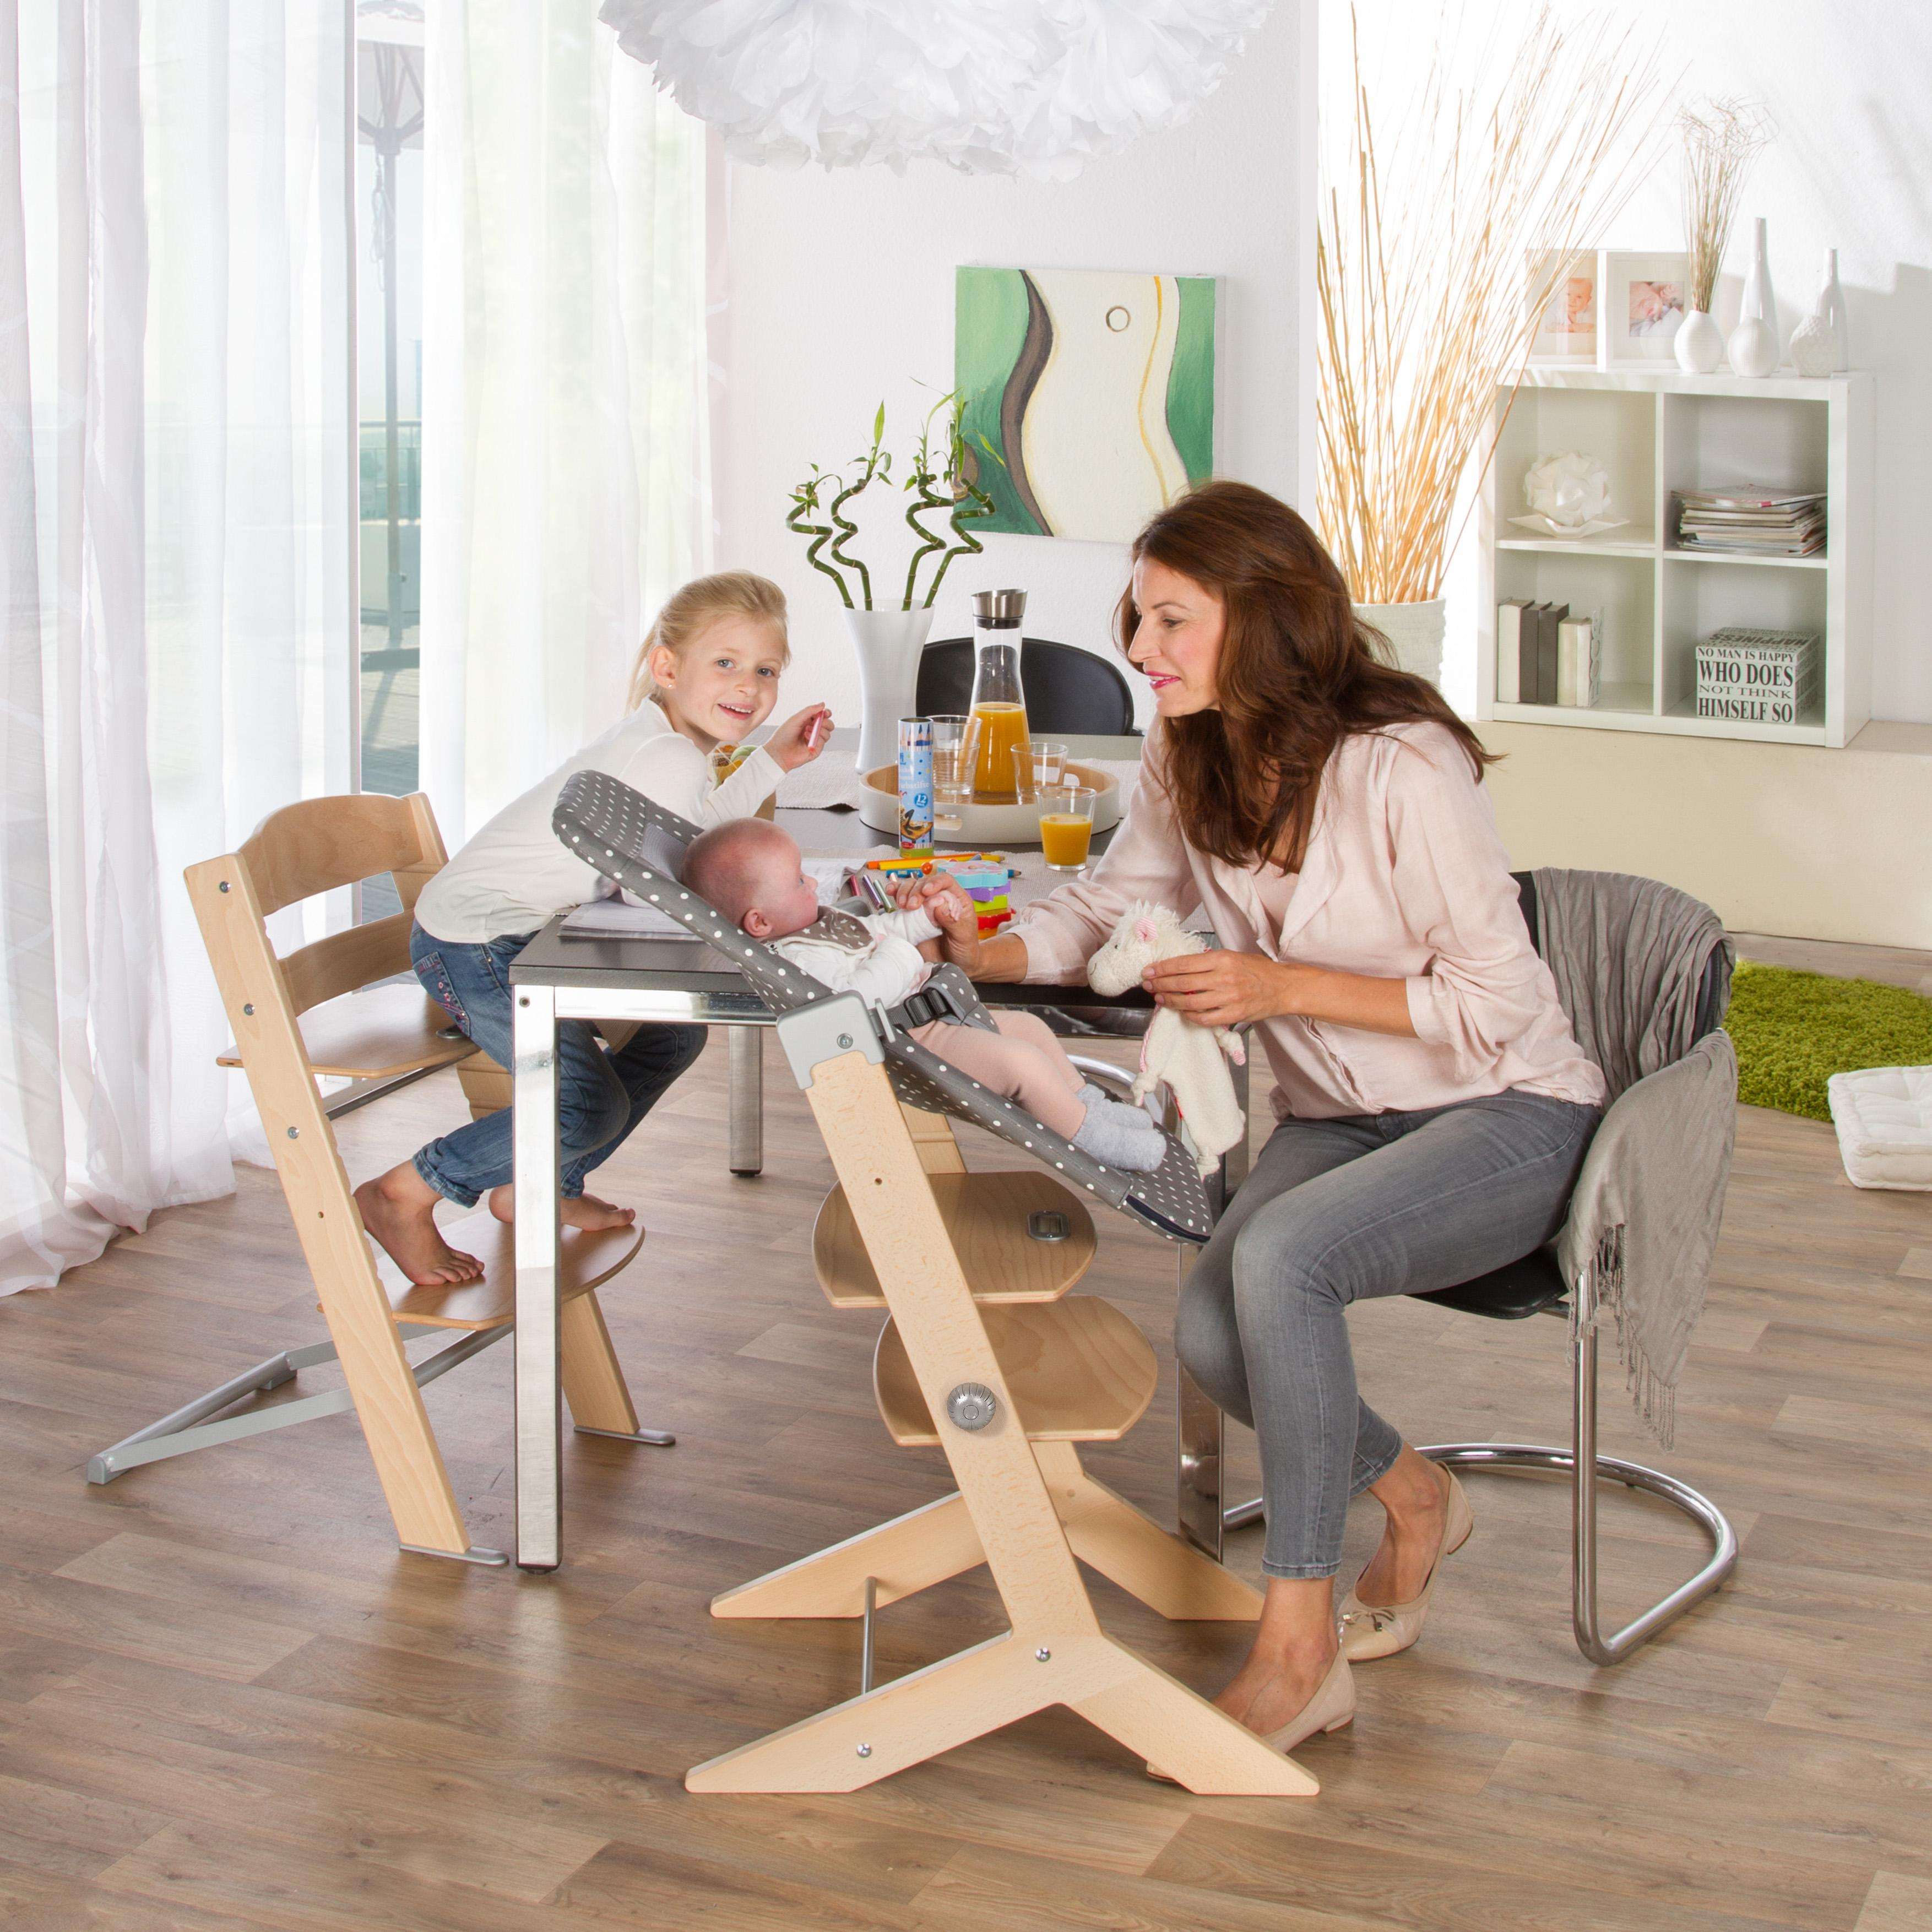 Geuther Babyliege Sitn Sleep Geuther Amazonde Baby